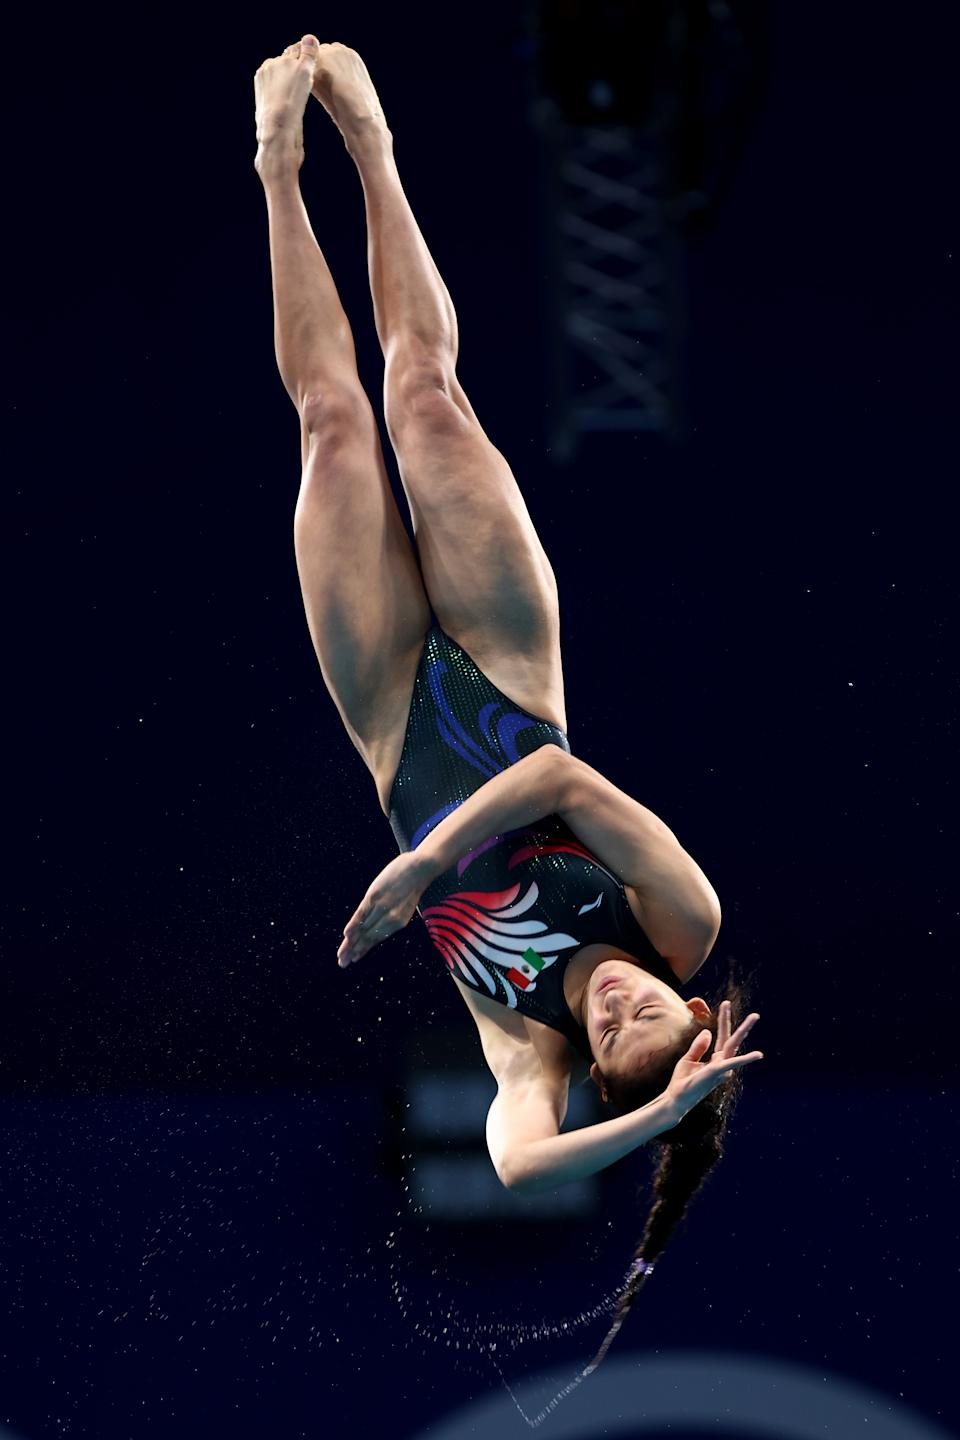 <p>Gabriela Agundez Garcia of Team Mexico competes in the Women's 10m Platform Final on day thirteen of the Tokyo 2020 Olympic Games at Tokyo Aquatics Centre on August 05, 2021 in Tokyo, Japan. (Photo by Clive Rose/Getty Images)</p>